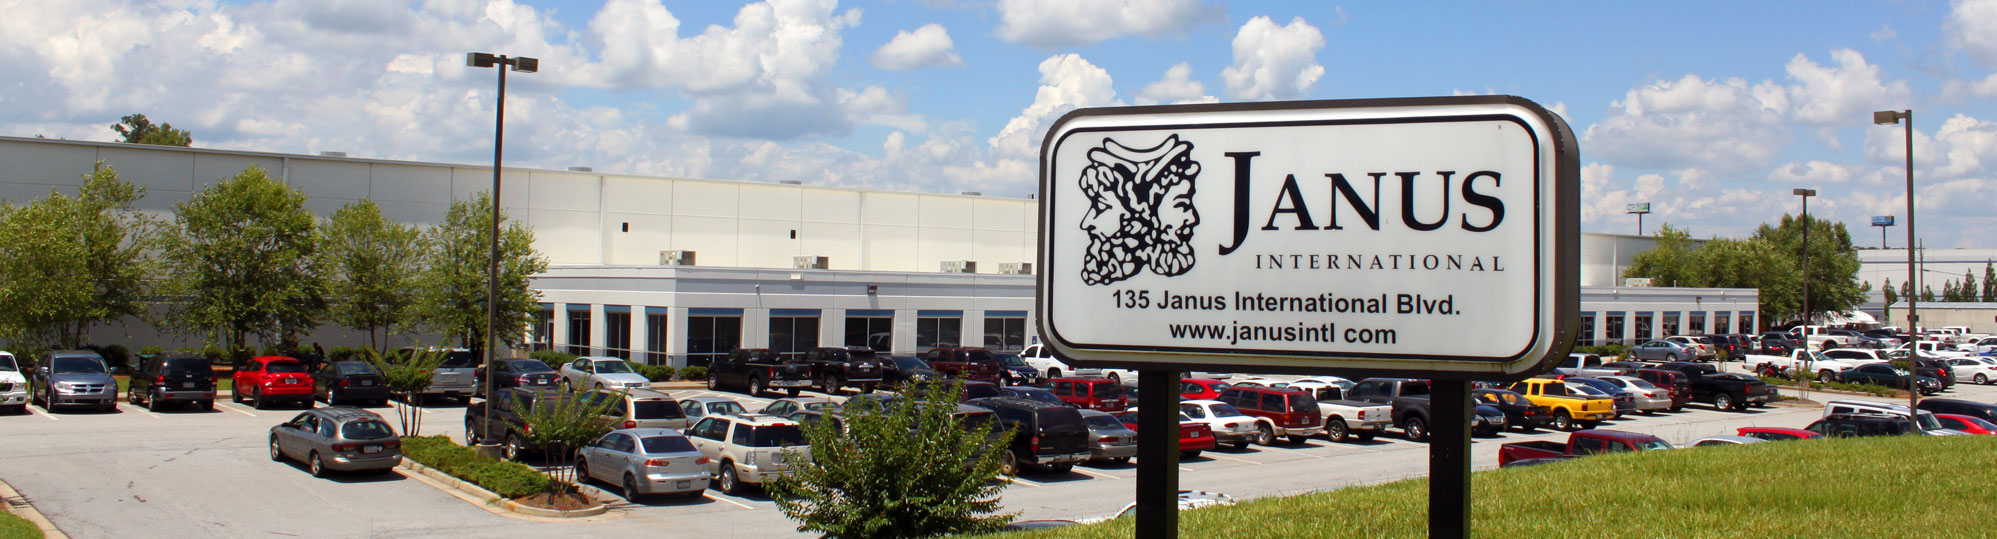 Janus International steel roll up self storage doors and smart entry systems